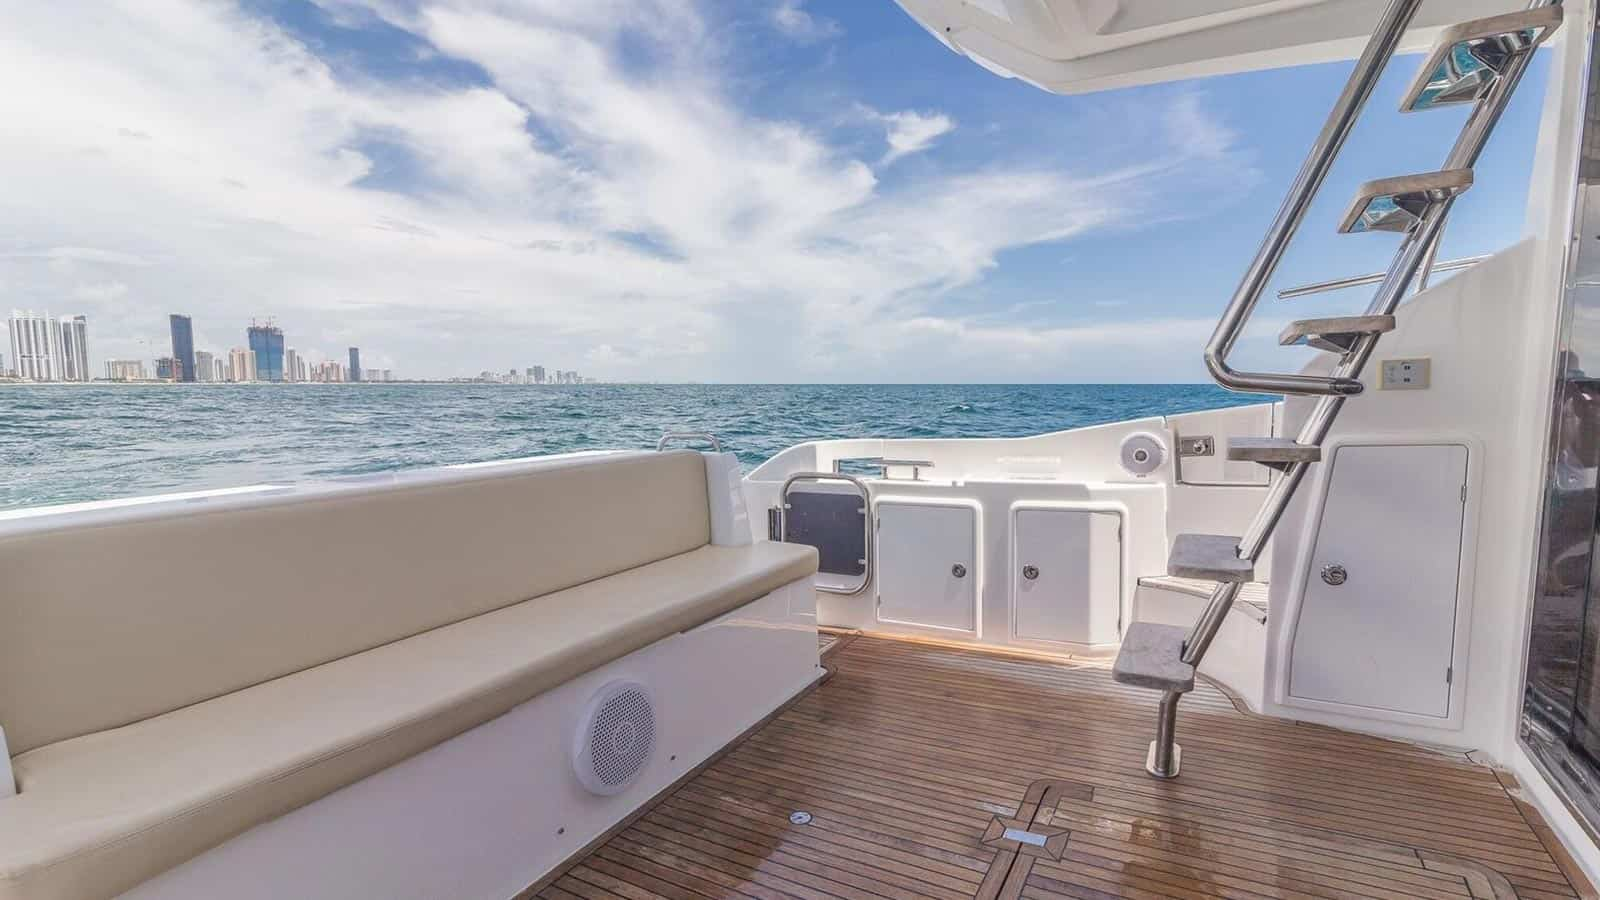 Yacht Charter Miami Prices